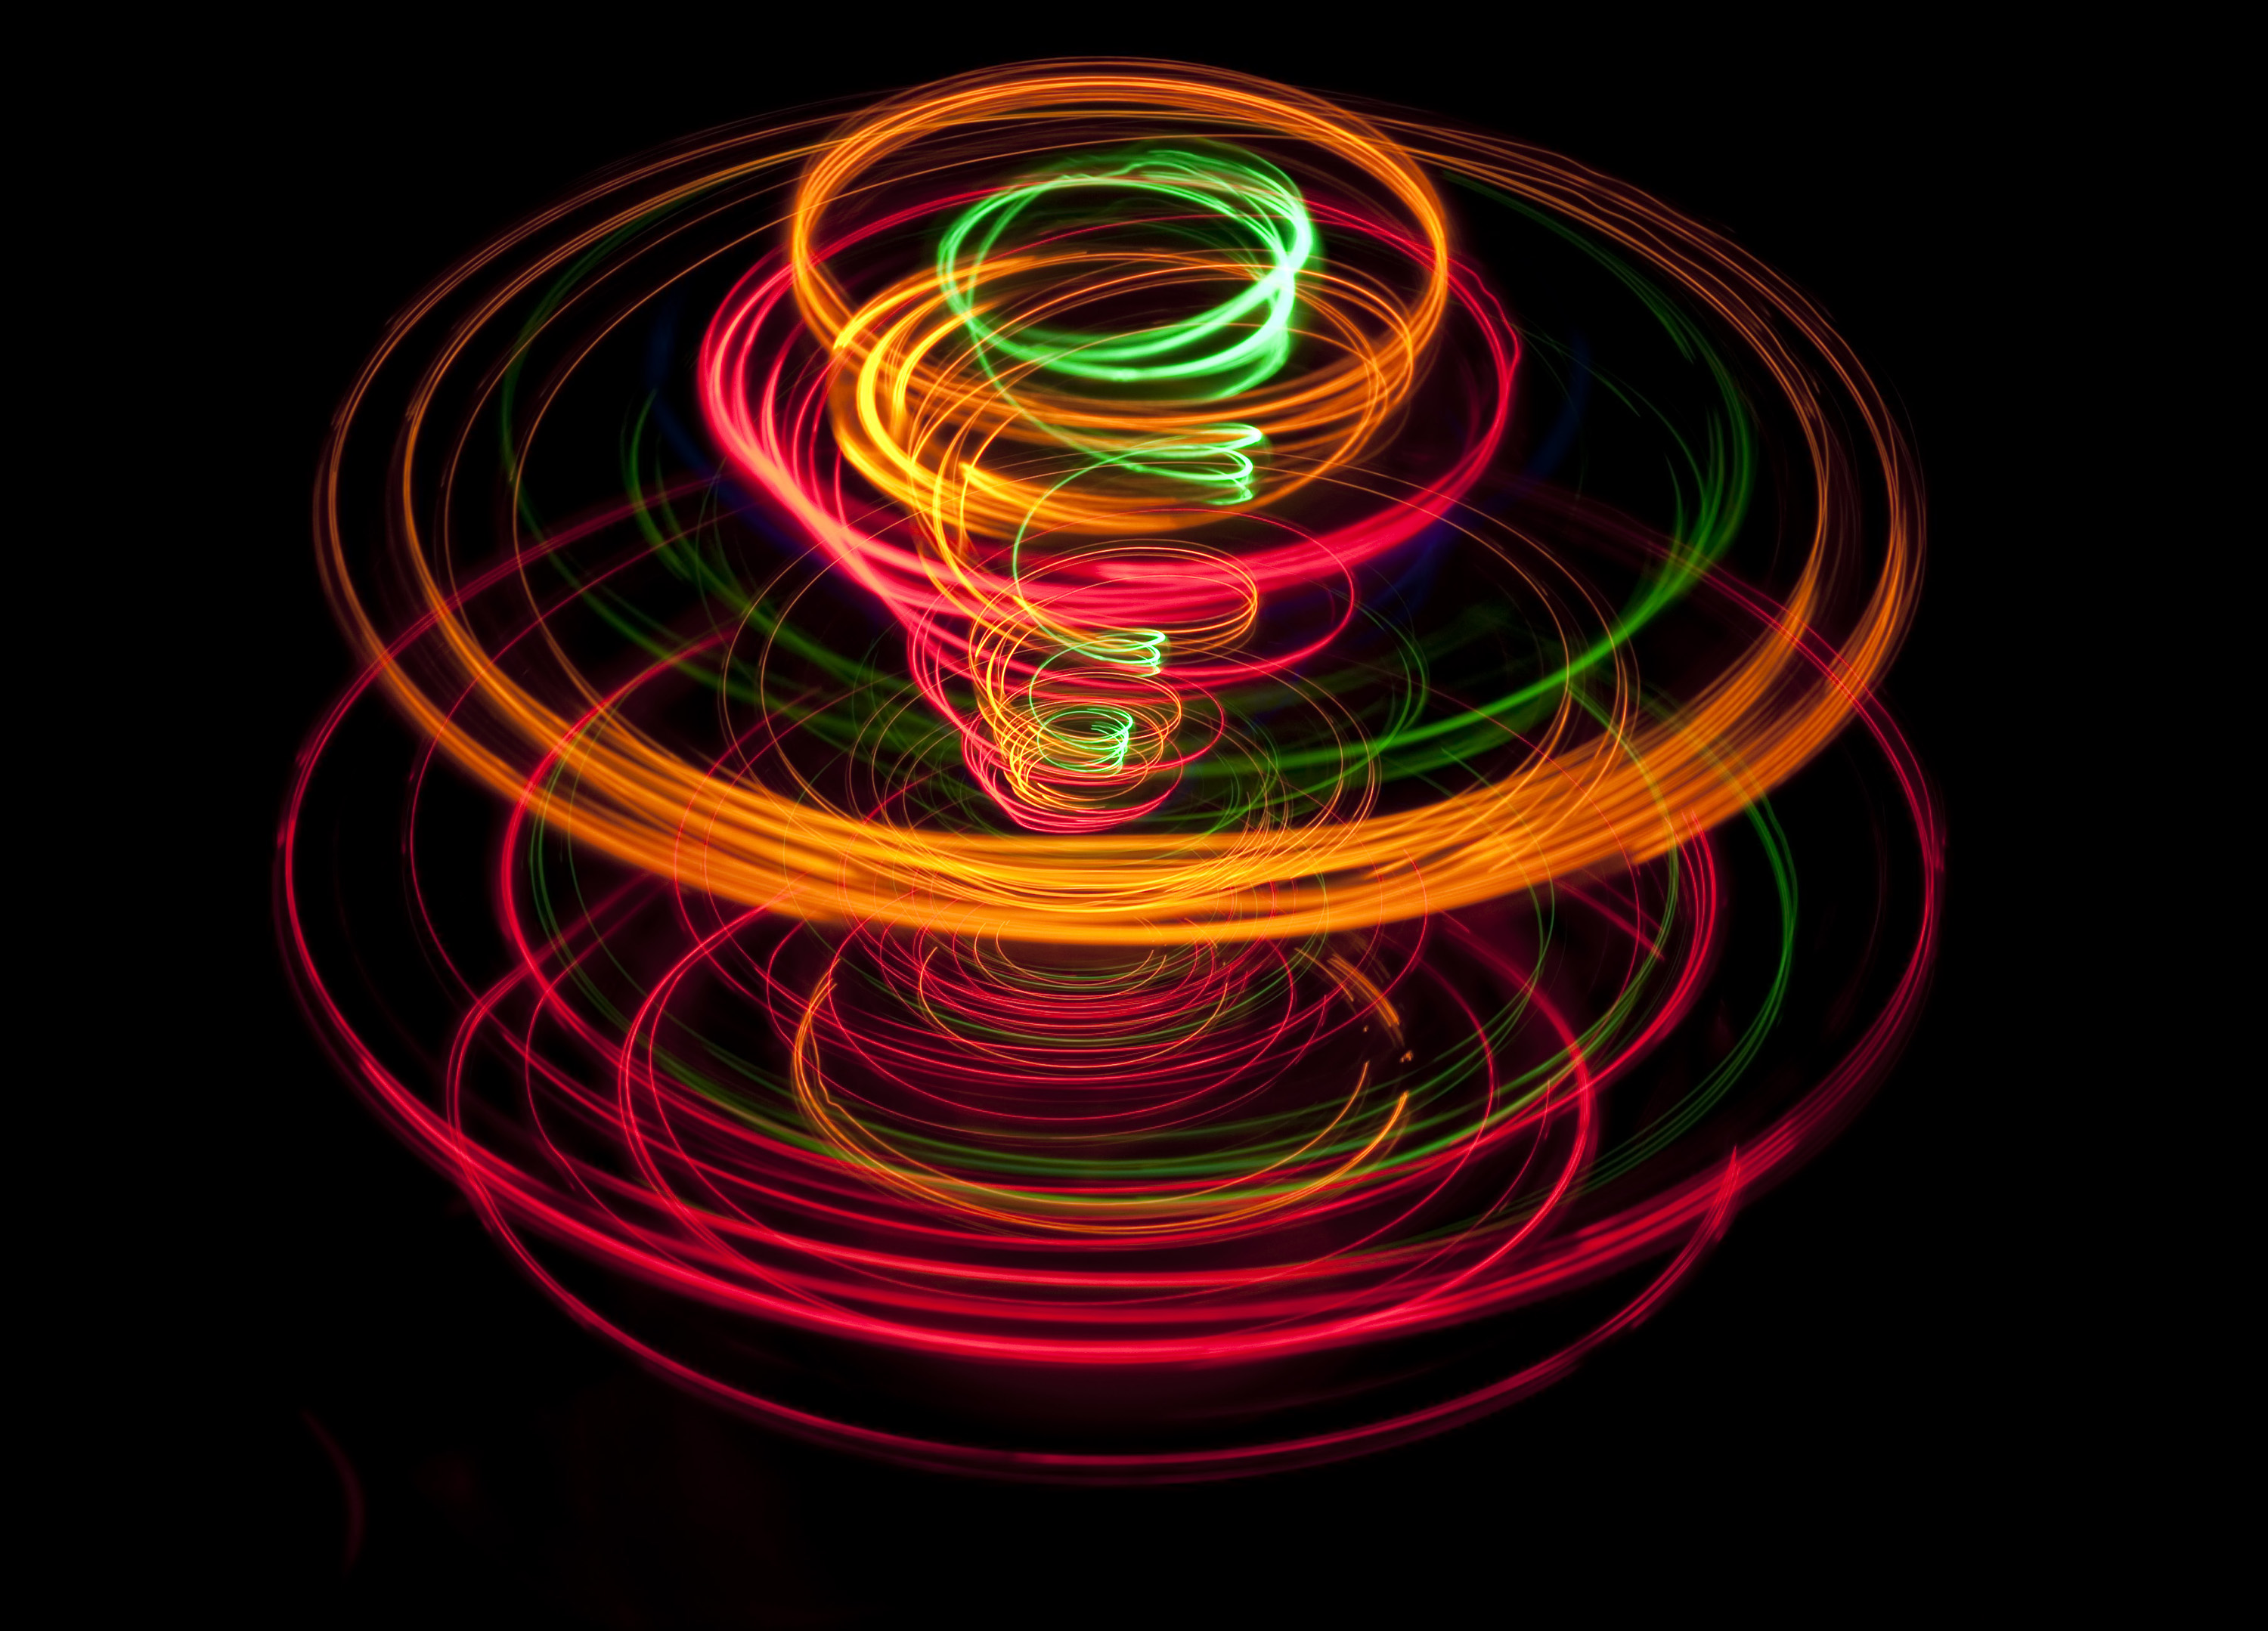 and expanding spiral of colored light